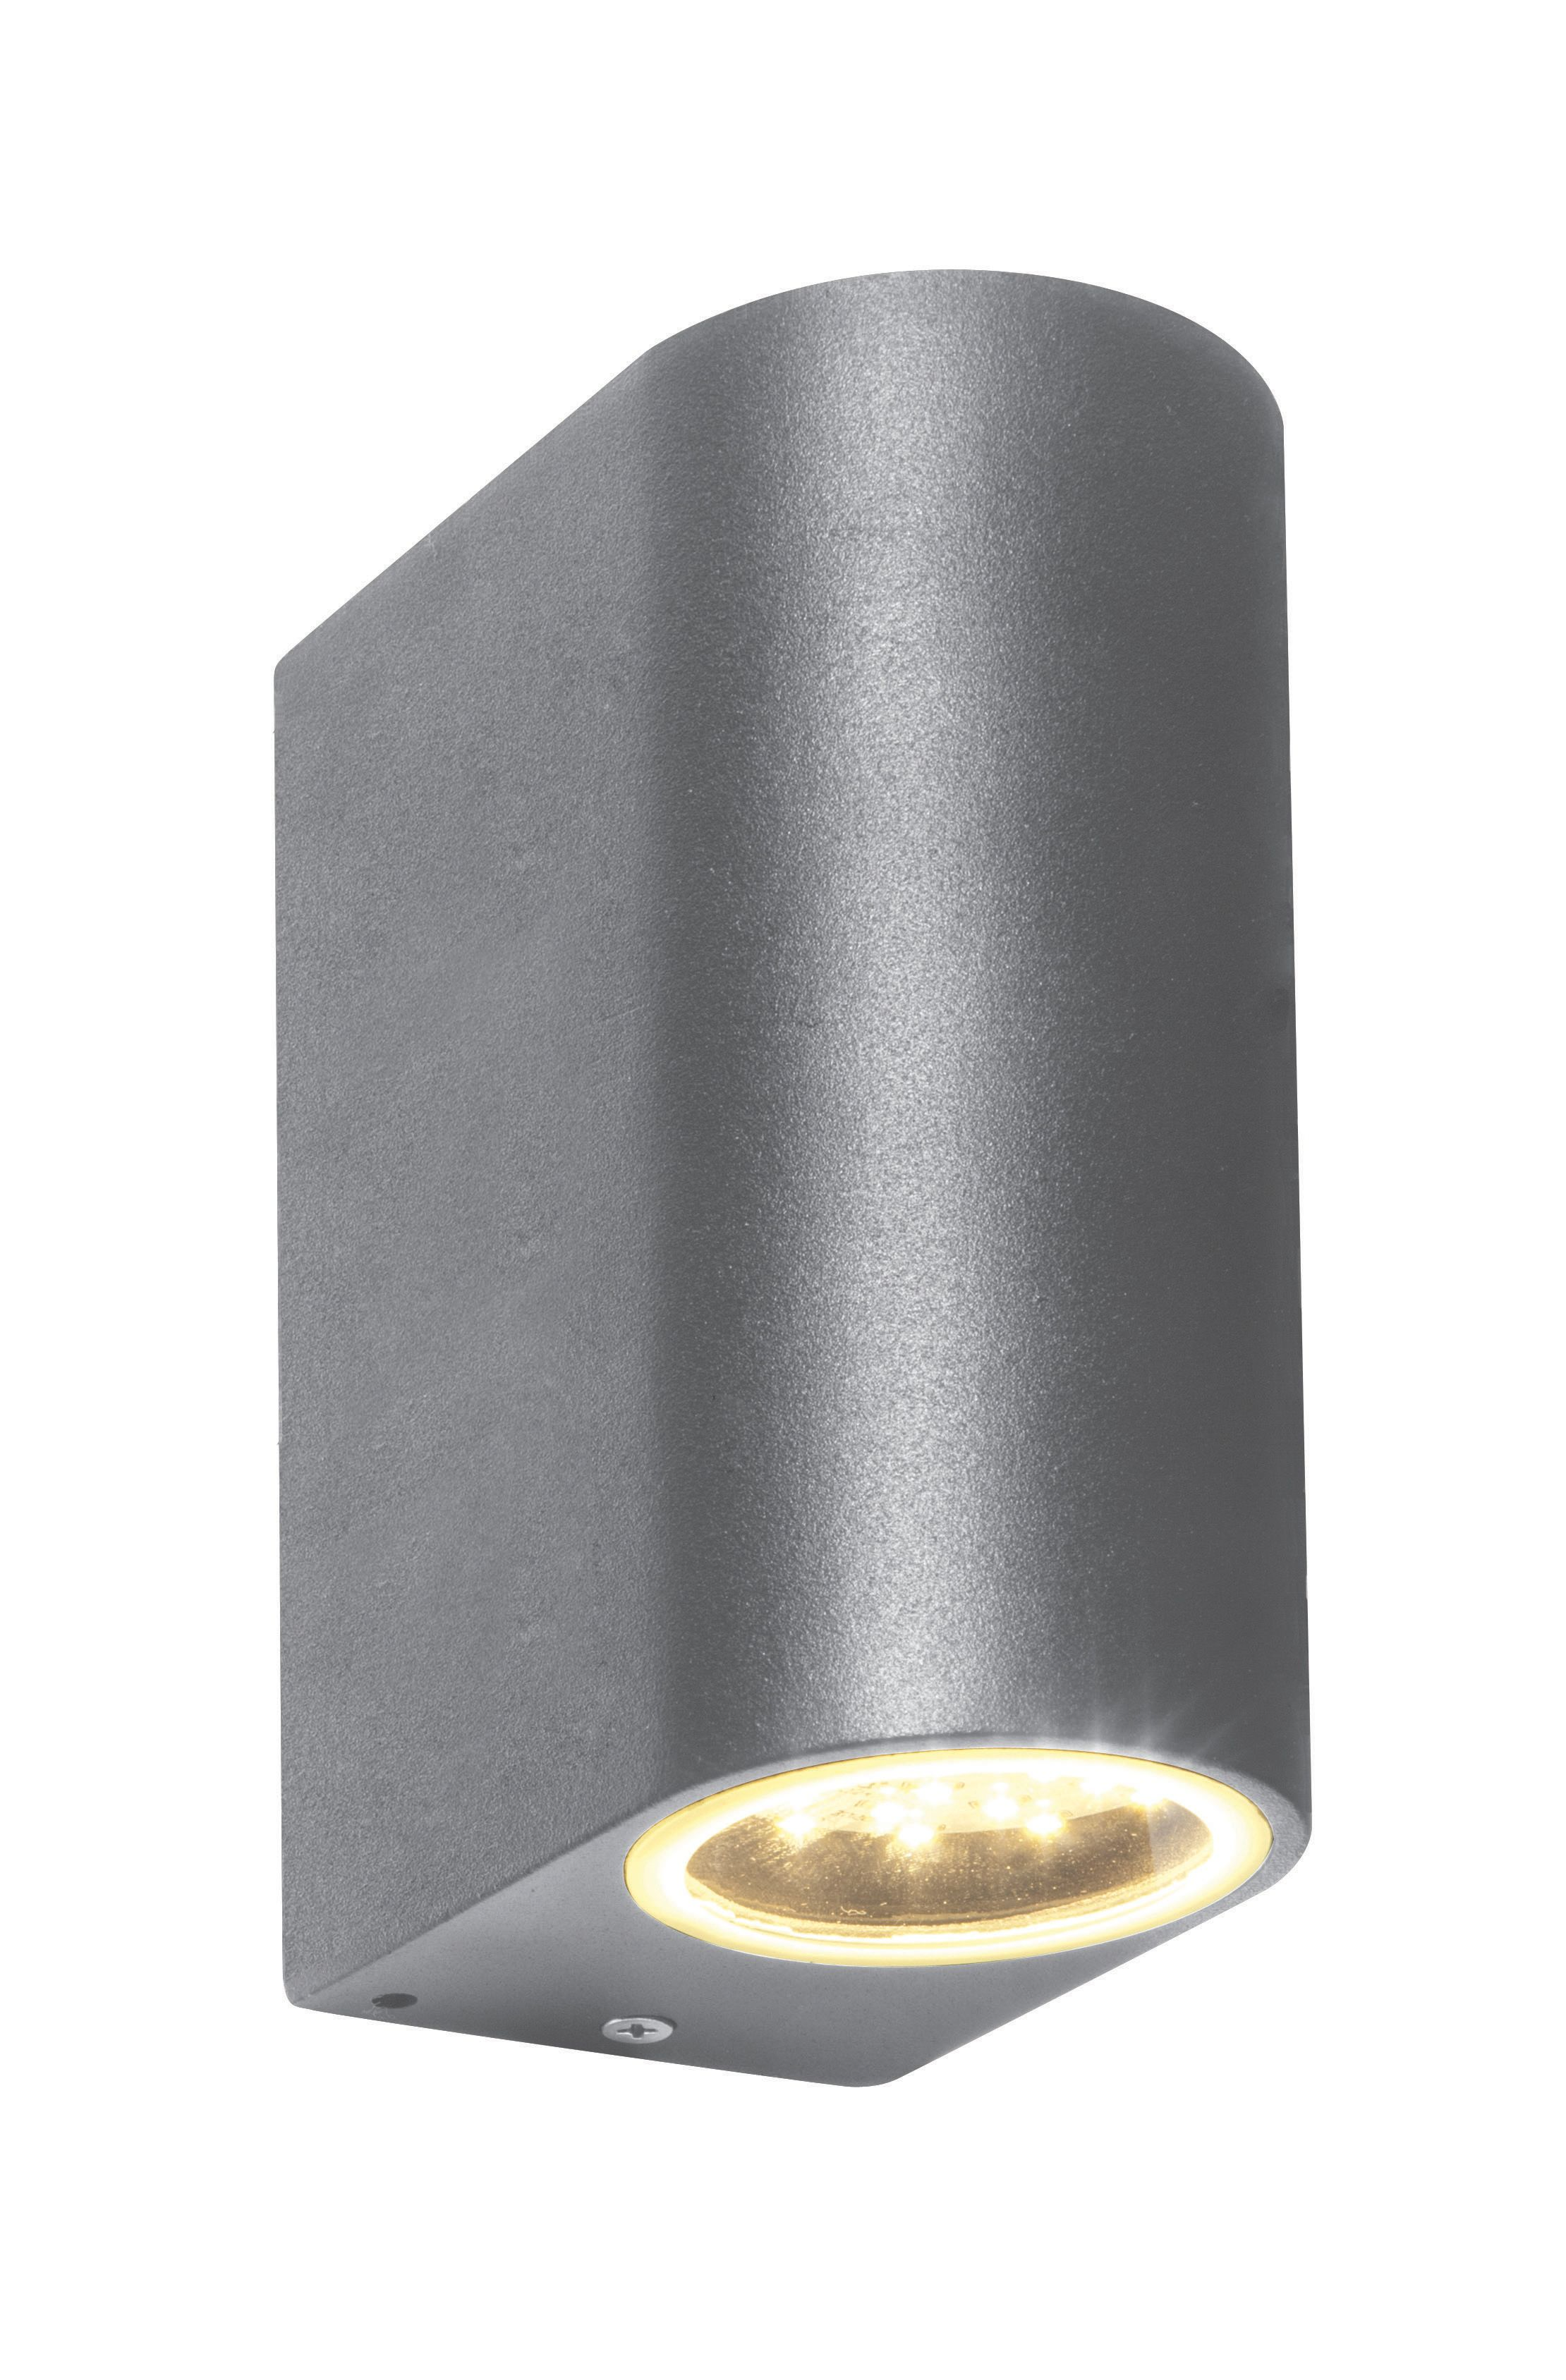 Wickes Garden Wall Lights : Search outdoor wall lights Wickes.co.uk